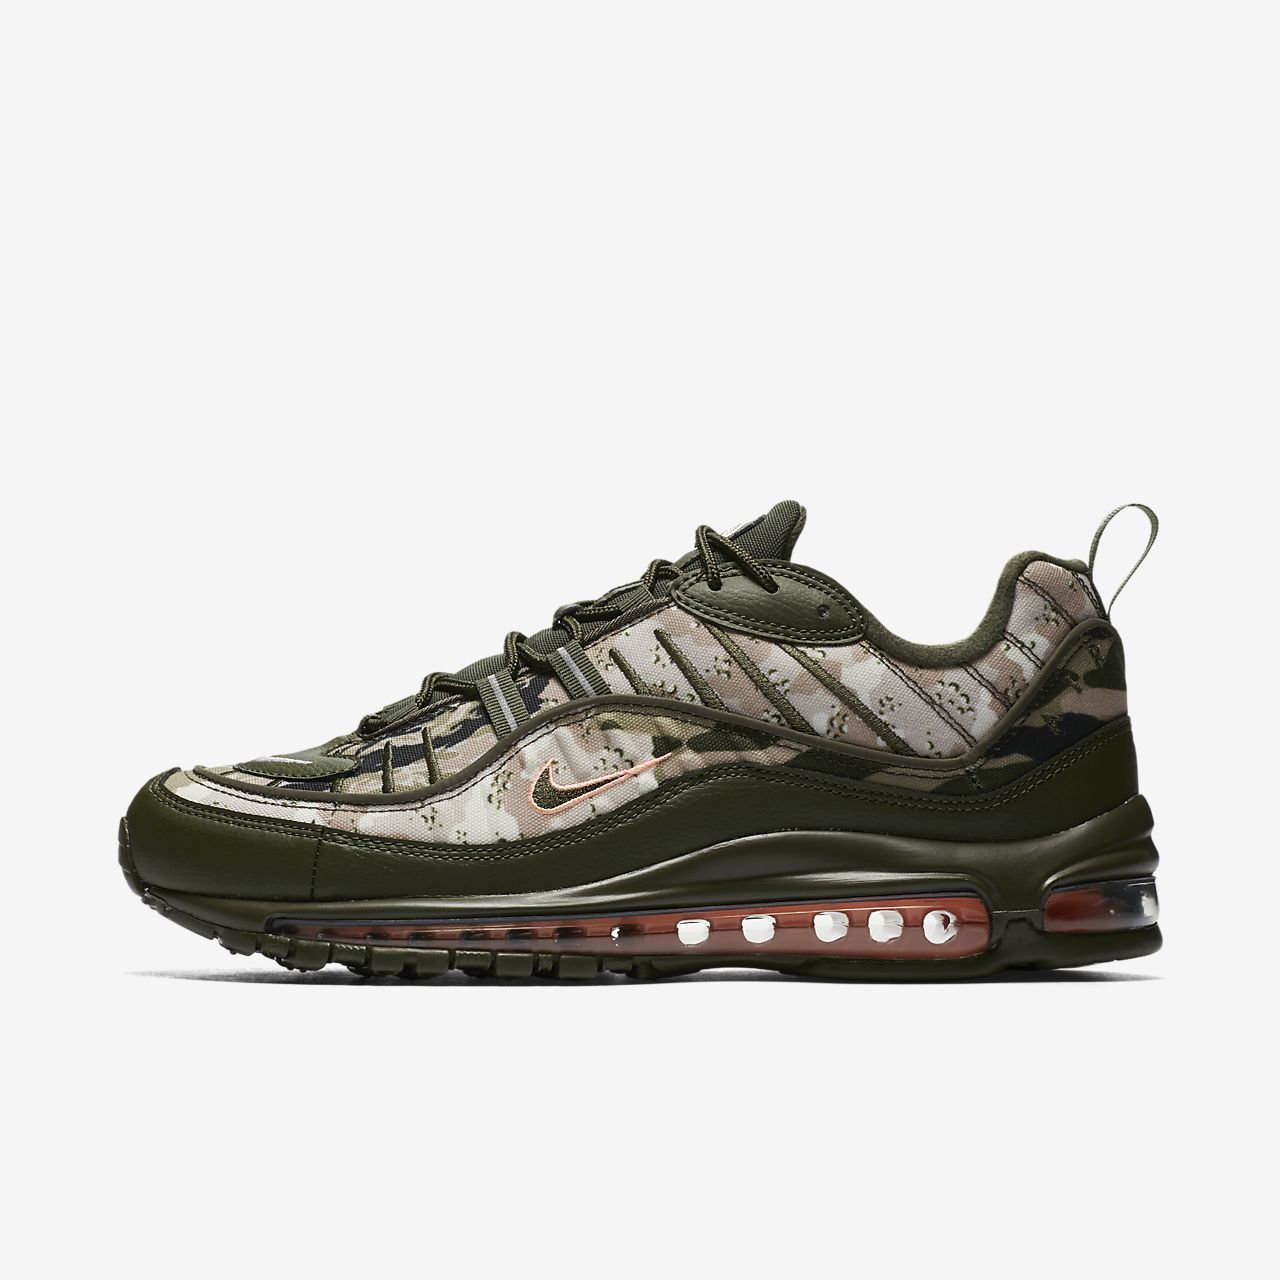 premium selection 87075 9e81f ... Nike Air Max 98 Men s Shoe